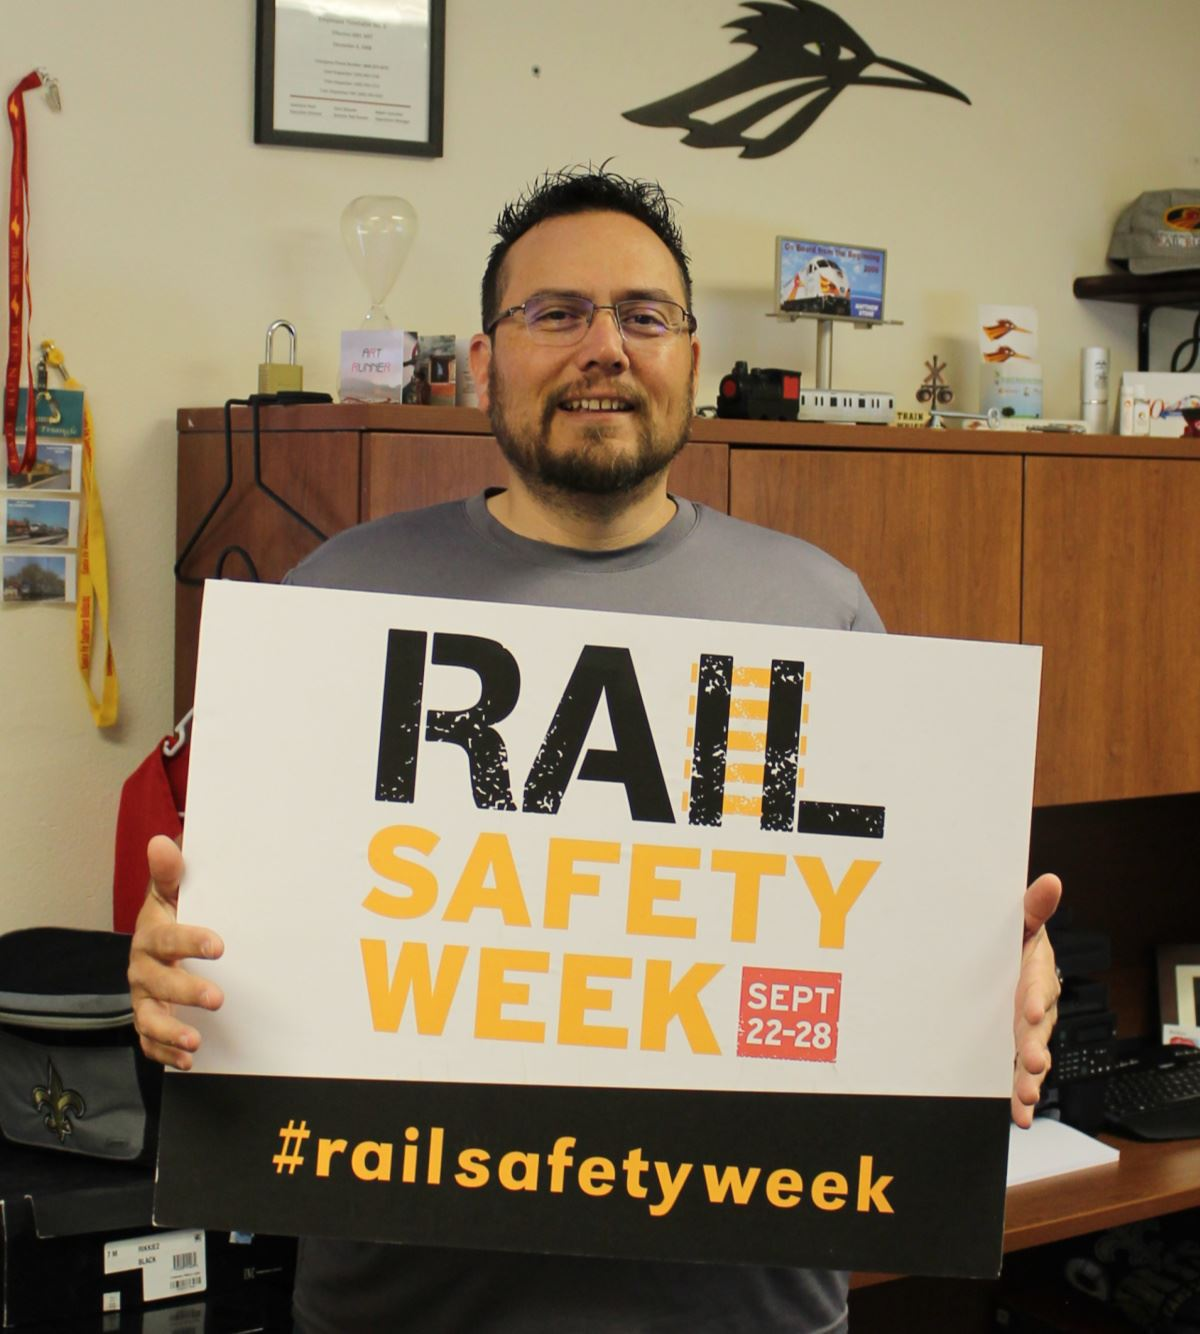 Matt Stone holding rail safety sign